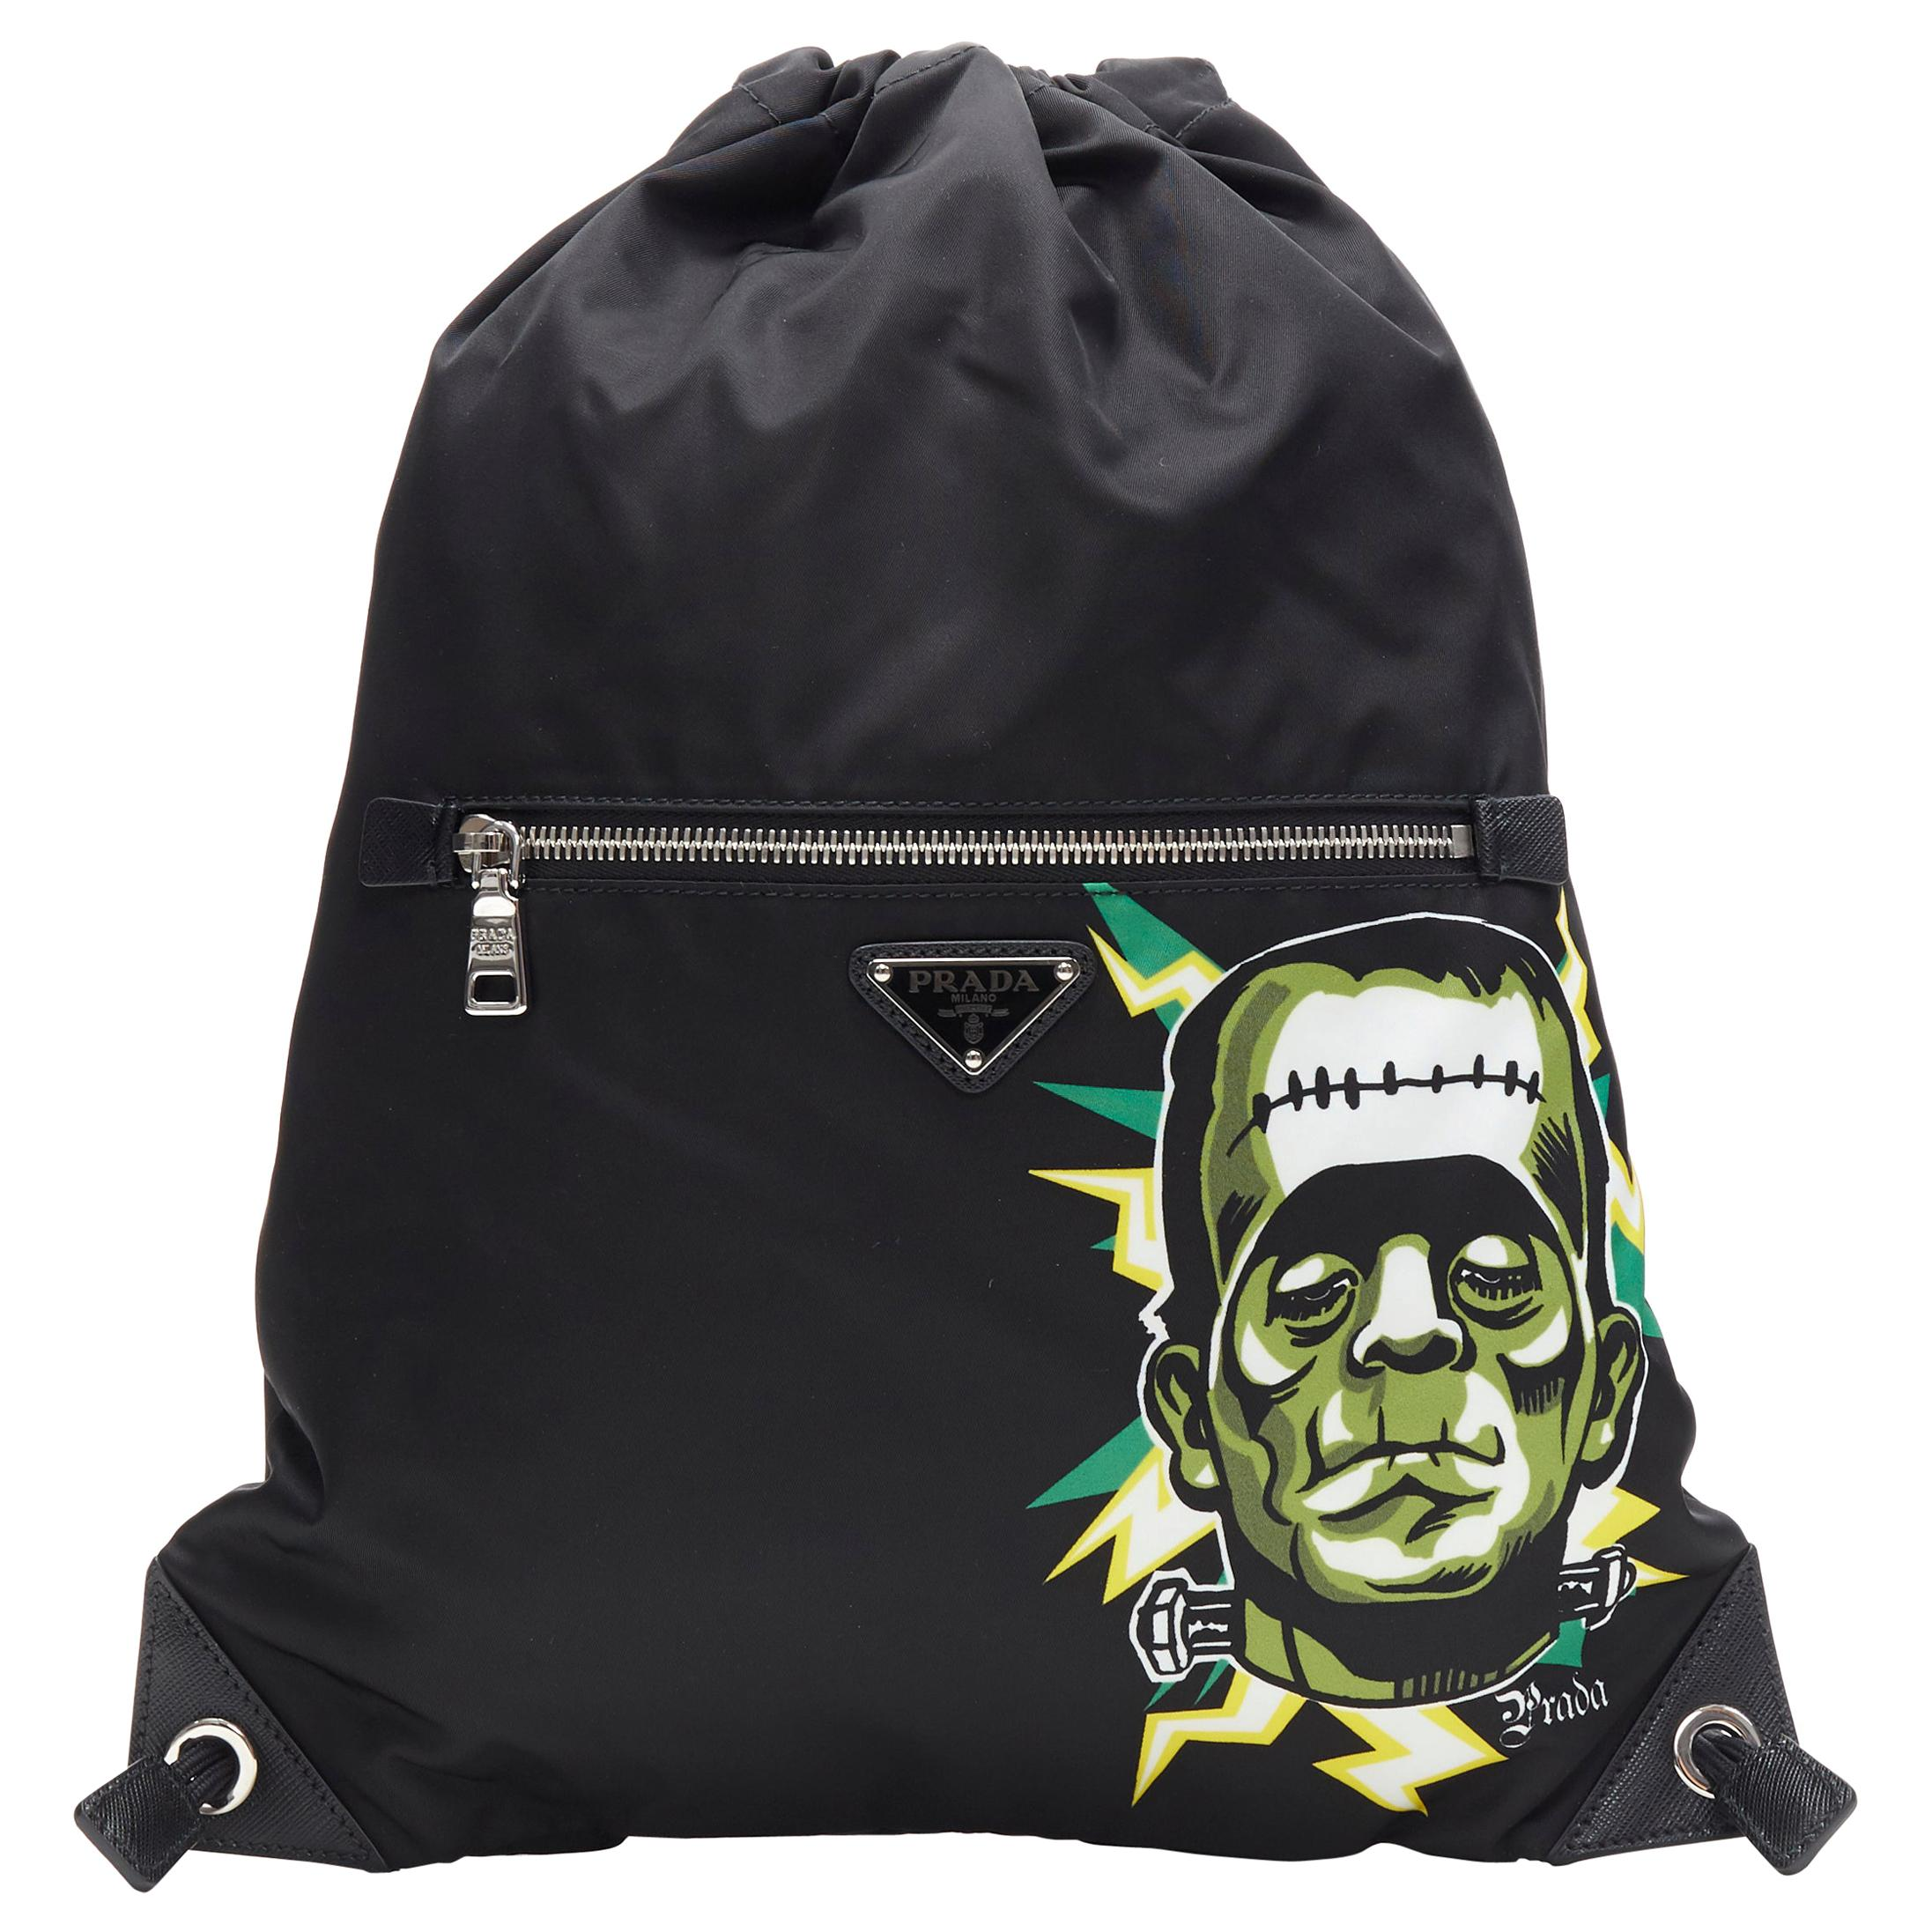 new PRADA 2019 Frankenstein black nylon triangle logo drawstring backpack bag